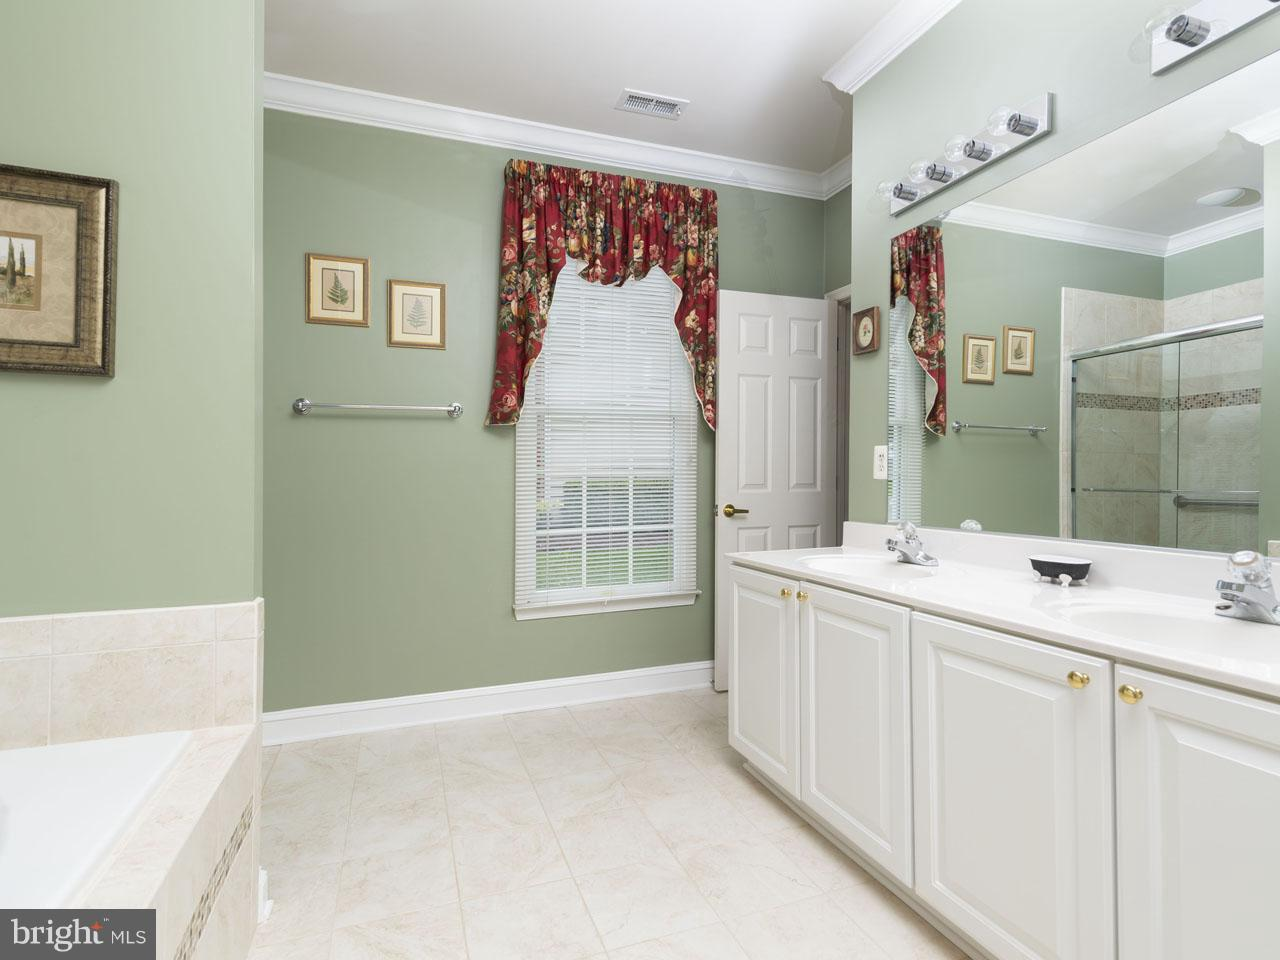 1005040466-300638083311-2021-07-22-06-45-08        Gainesville Delaware Real Estate For Sale   MLS# 1005040466  - Best of Northern Virginia